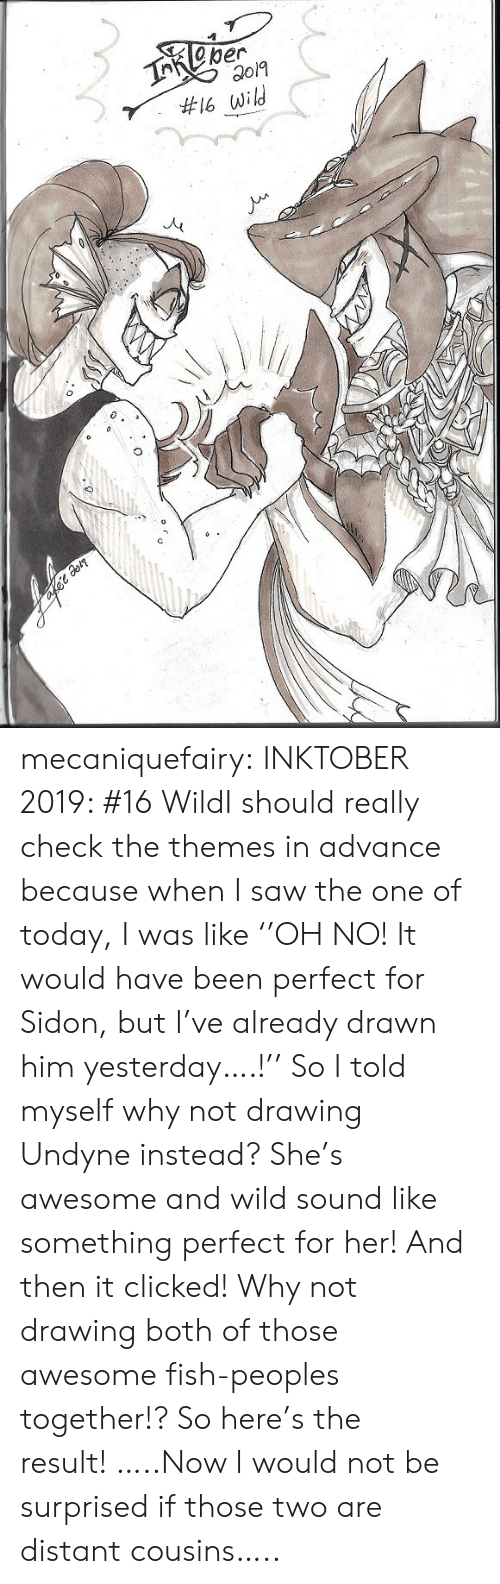 Saw, Tumblr, and Blog: TReper  #16 wild mecaniquefairy:  INKTOBER 2019: #16 WildI should really check the themes in advance because when I saw the one of today, I was like ''OH NO! It would have been perfect for Sidon, but I've already drawn him yesterday….!'' So I told myself why not drawing Undyne instead? She's awesome and wild sound like something perfect for her! And then it clicked! Why not drawing both of those awesome fish-peoples together!? So here's the result! …..Now I would not be surprised if those two are distant cousins…..